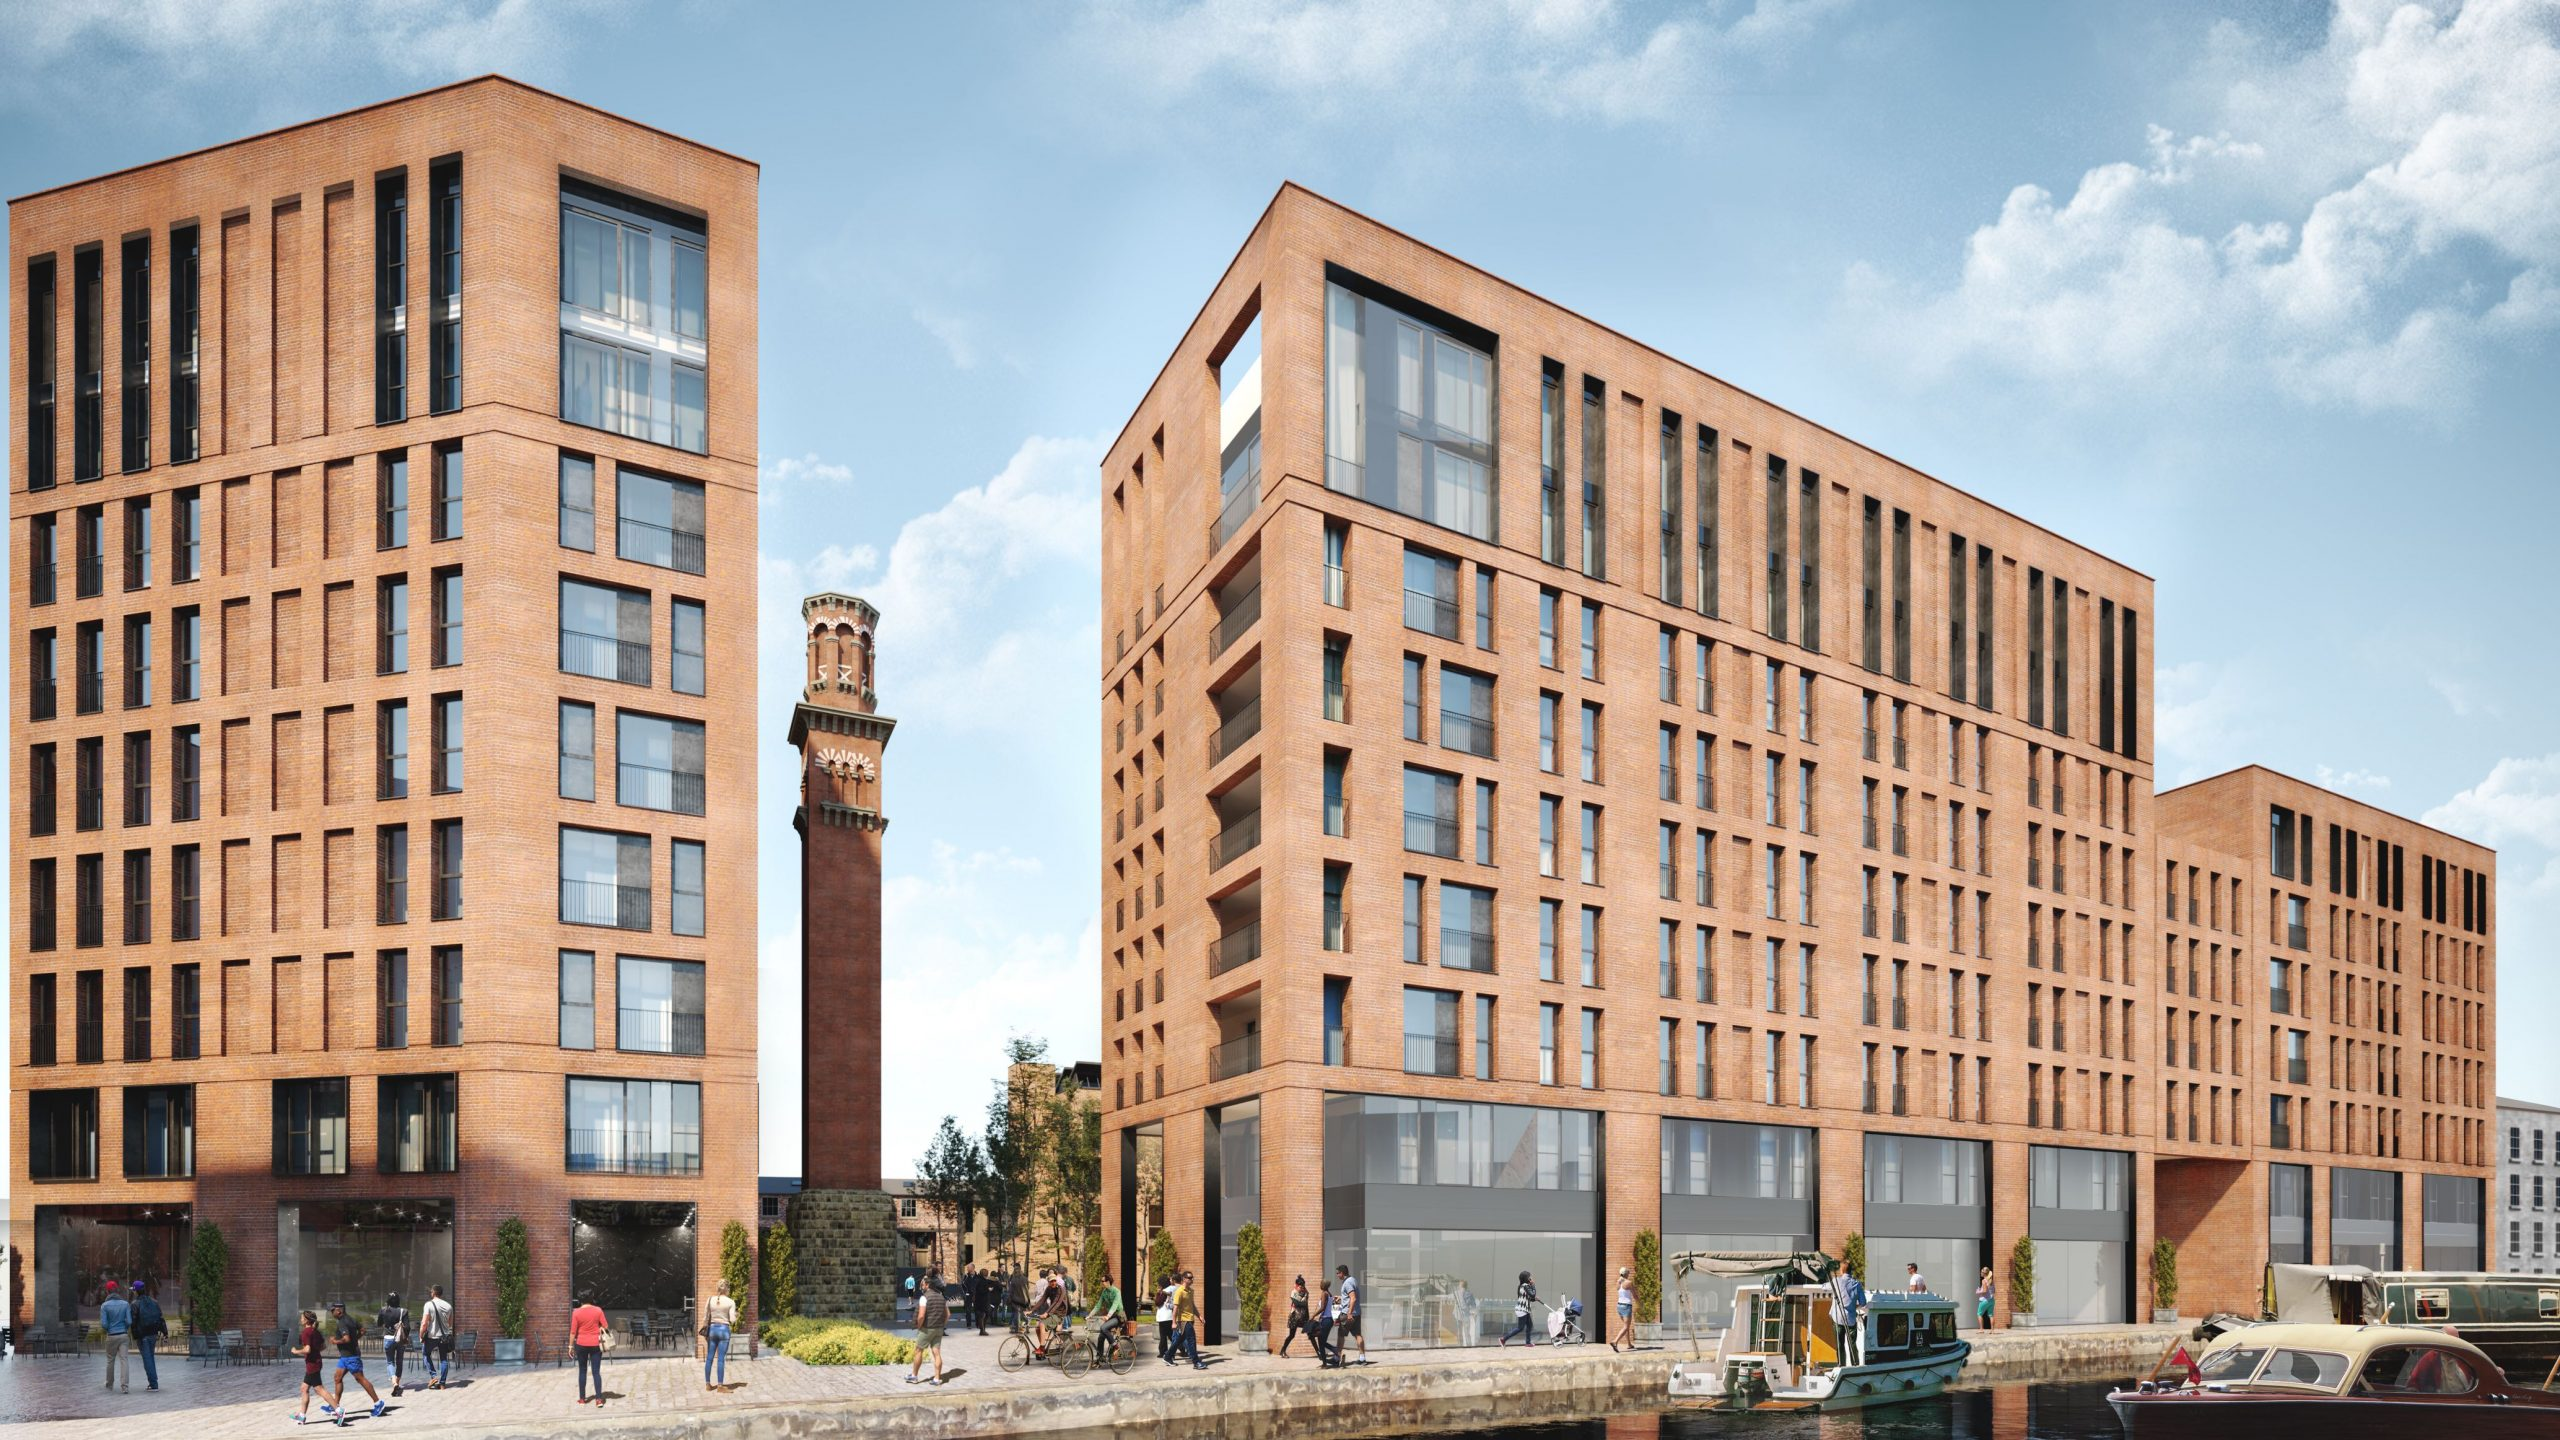 Richardson secures £57m from Legal & General for development of Tower Works BTR site in Leeds city centre